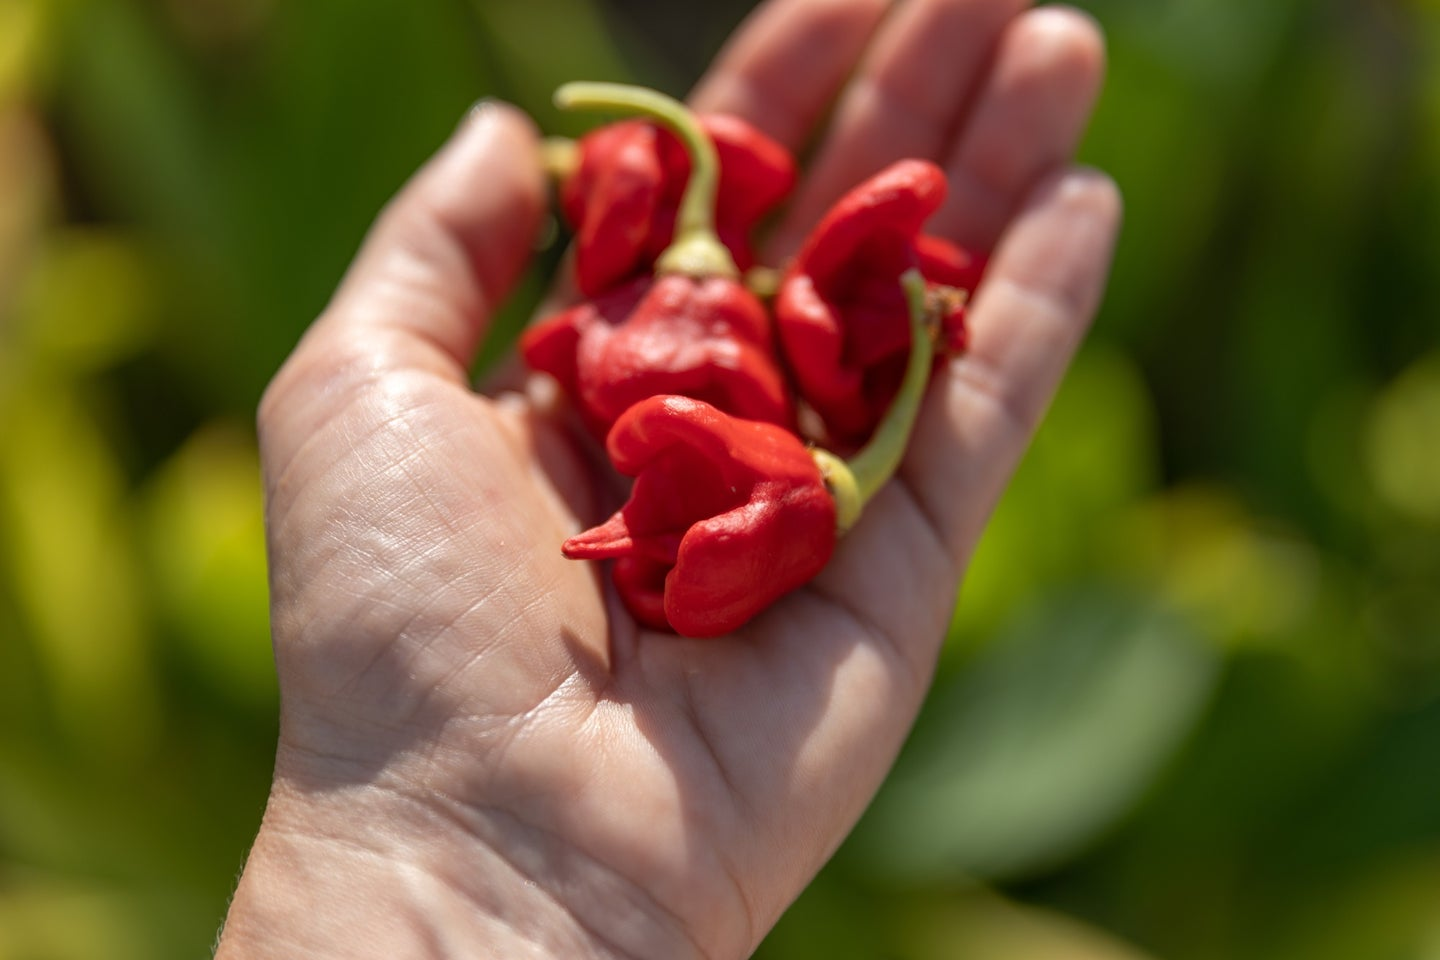 Hot chilli Carolina Reaper peppers on person's palm in summer garden.